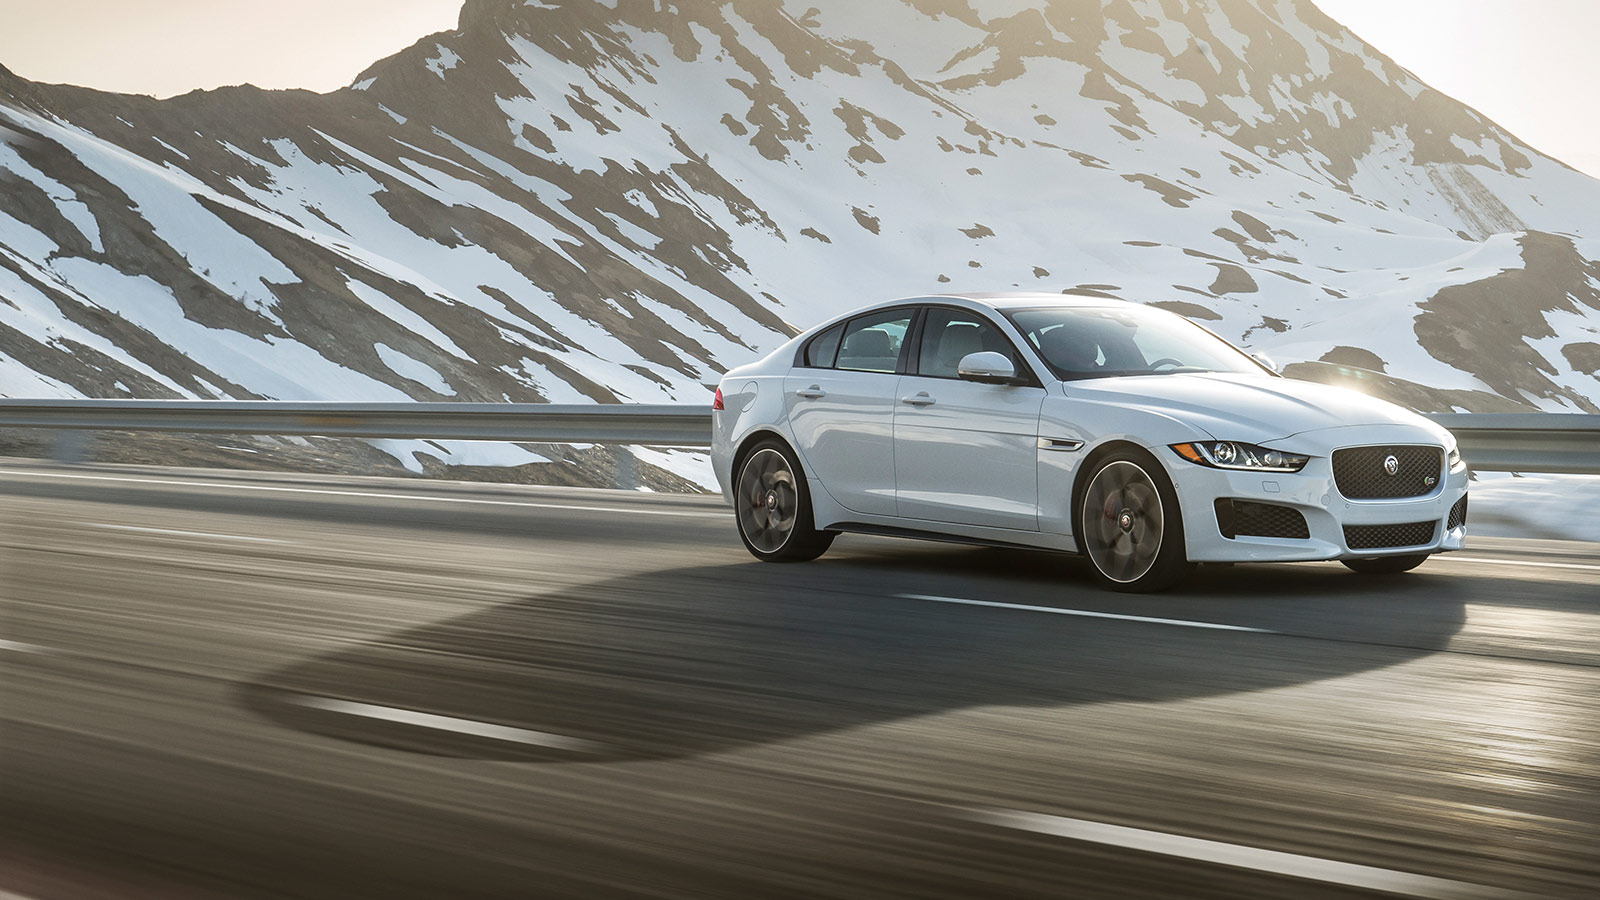 White Jaguar XE in Front of a Snowy Mountain.